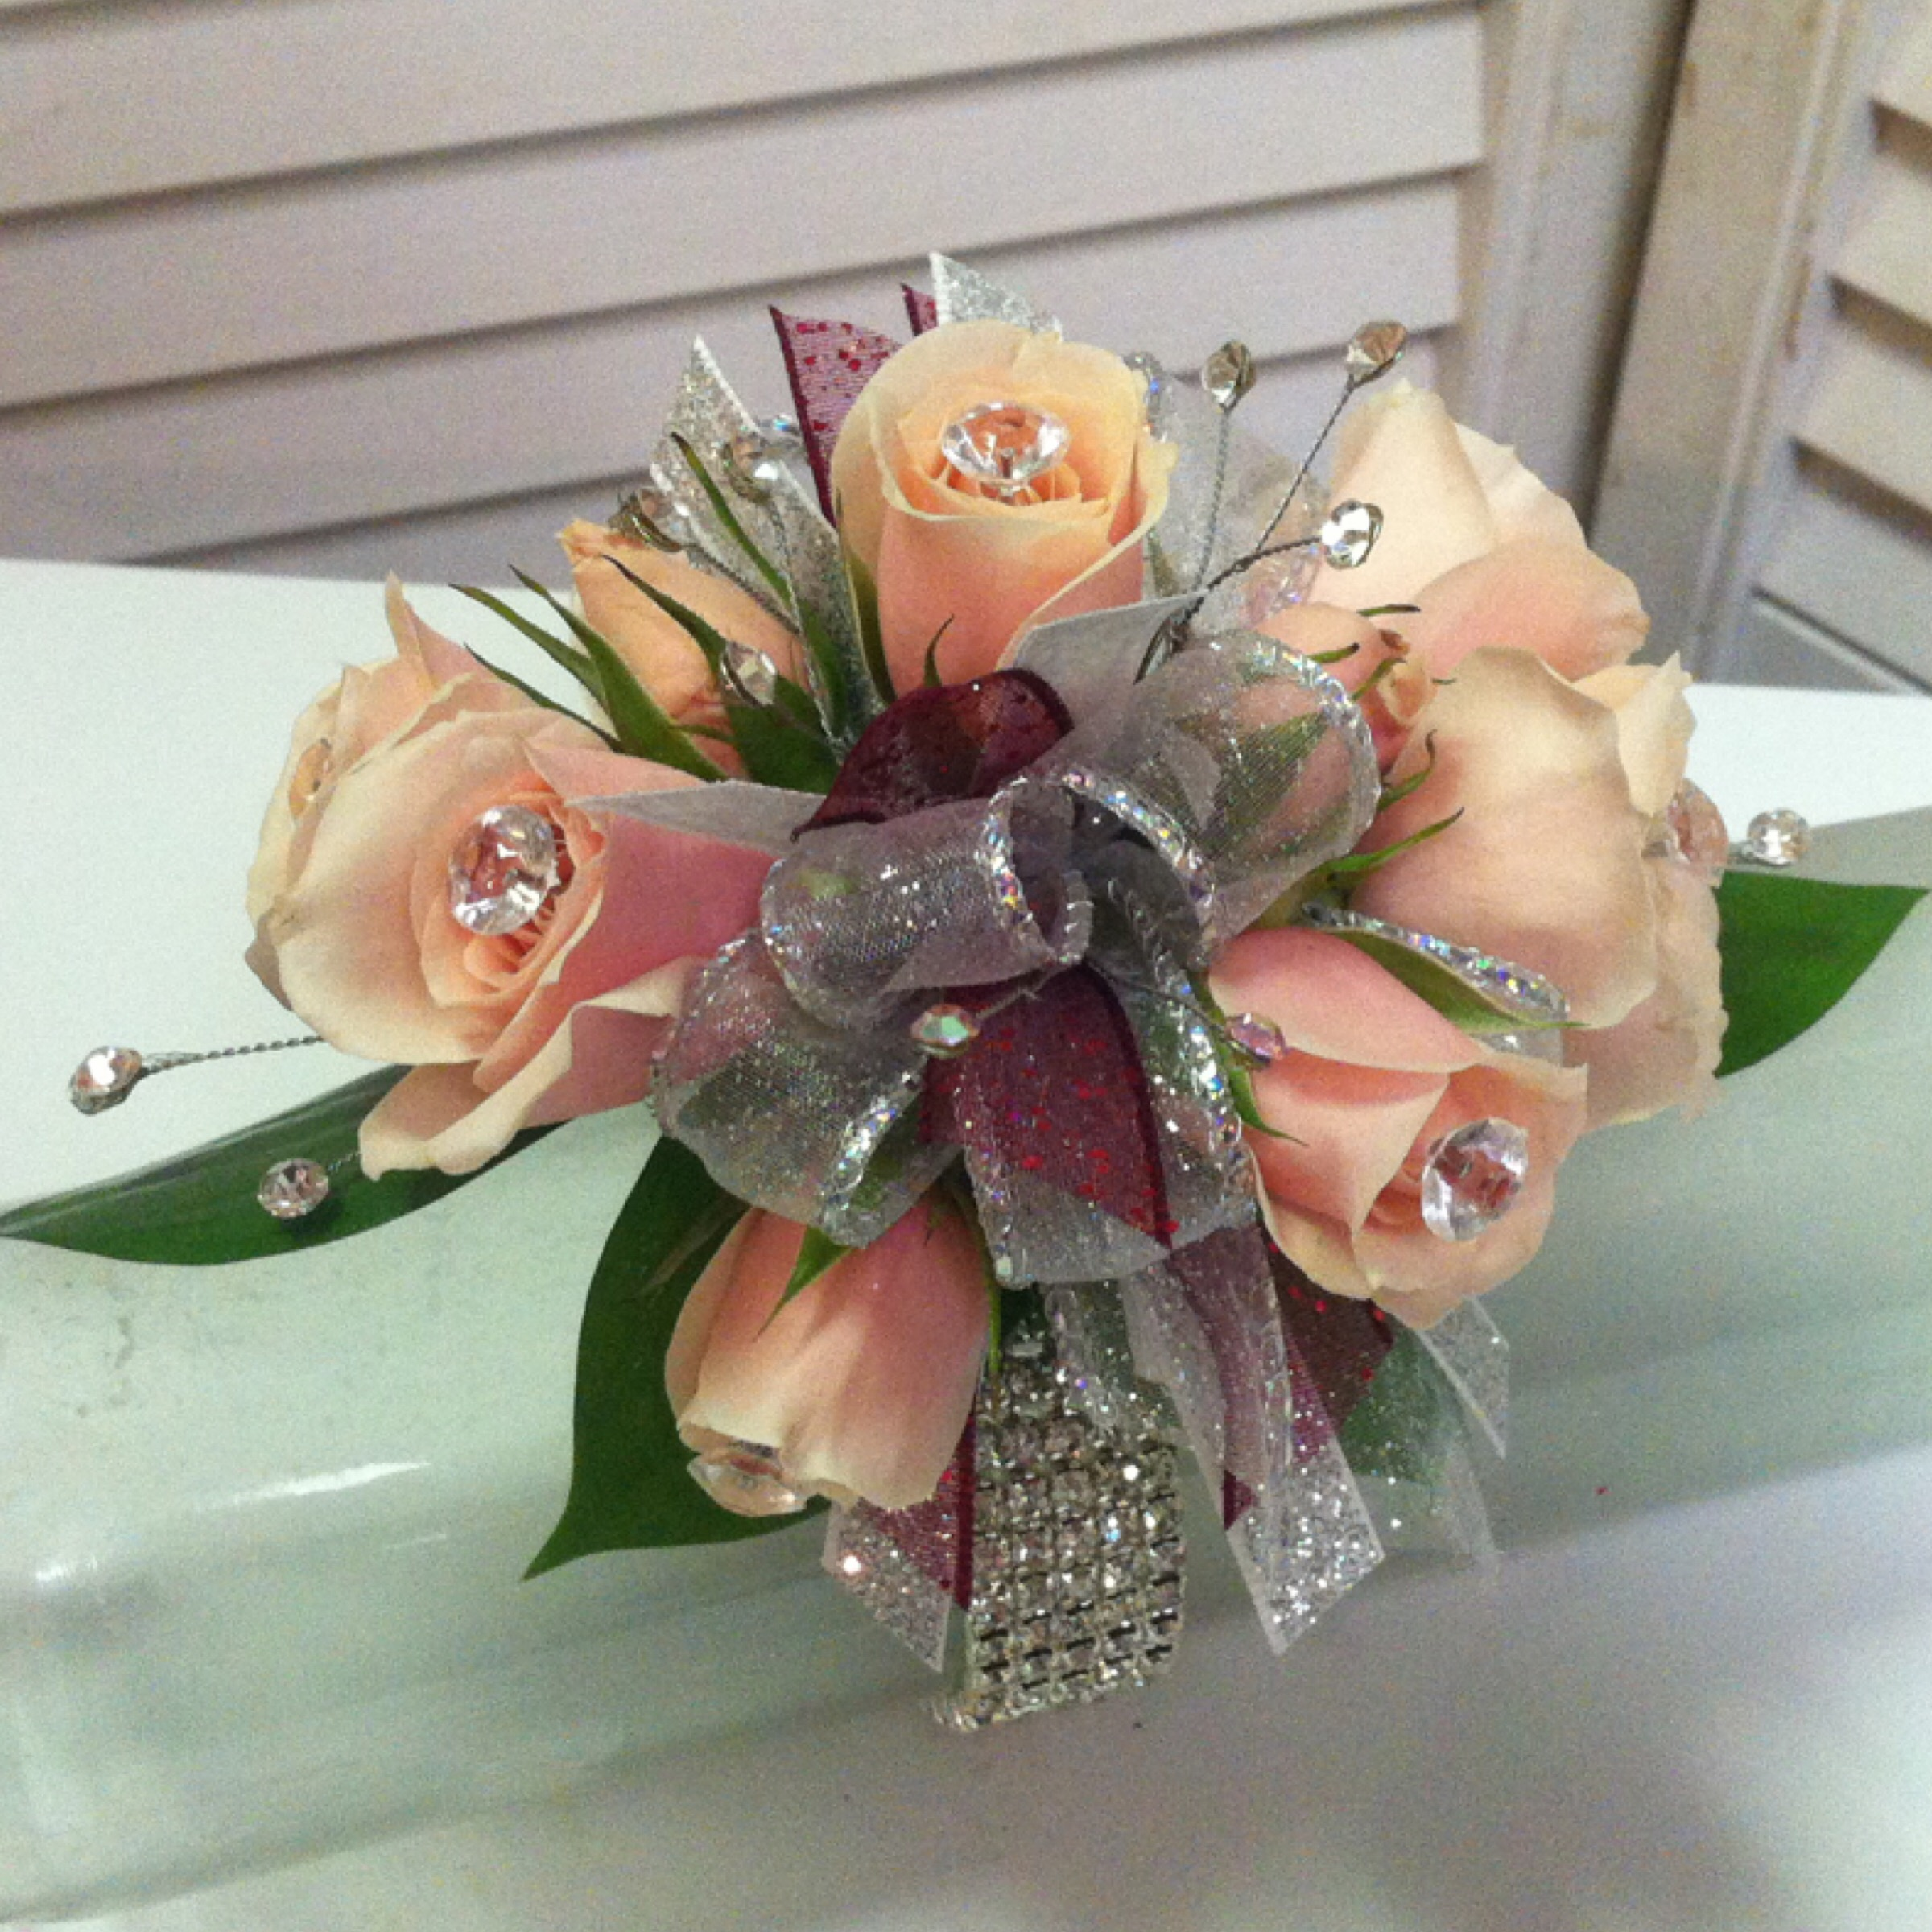 Plus Corsage (30) with Extra Flowers (5), Extra Jewels (5), Upgraded Bow (2), Deluxe Bracelet (7) $49